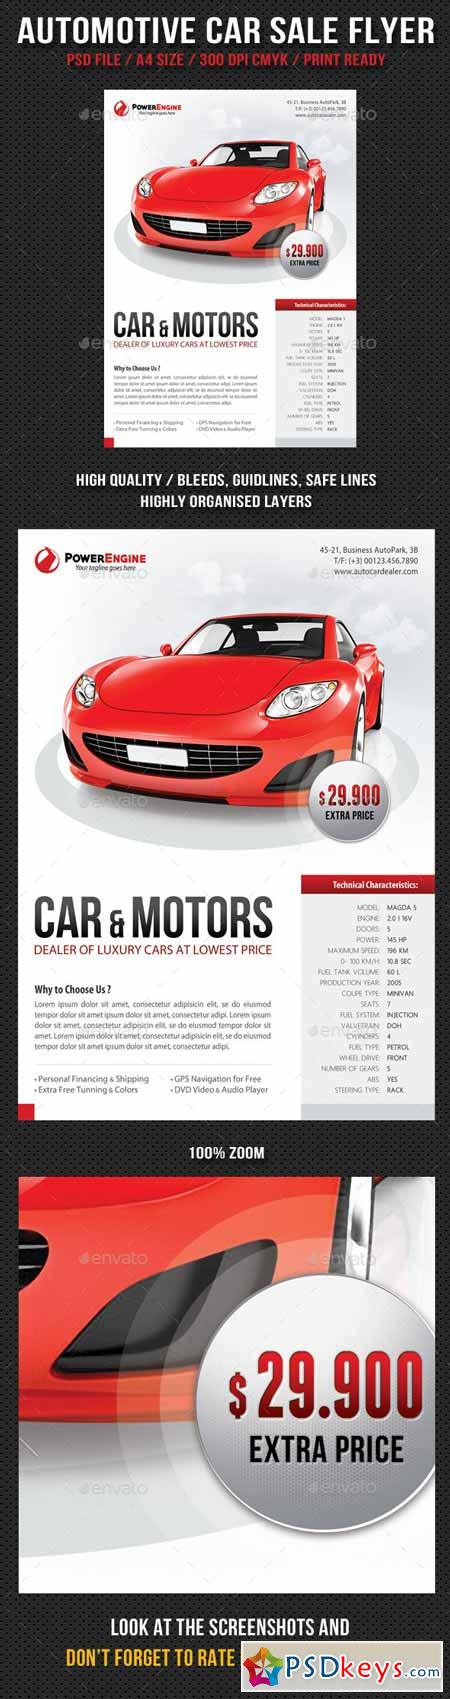 Automotive Car Sale Rental Flyer 10794339 Free Download – Car for Sale Flyer